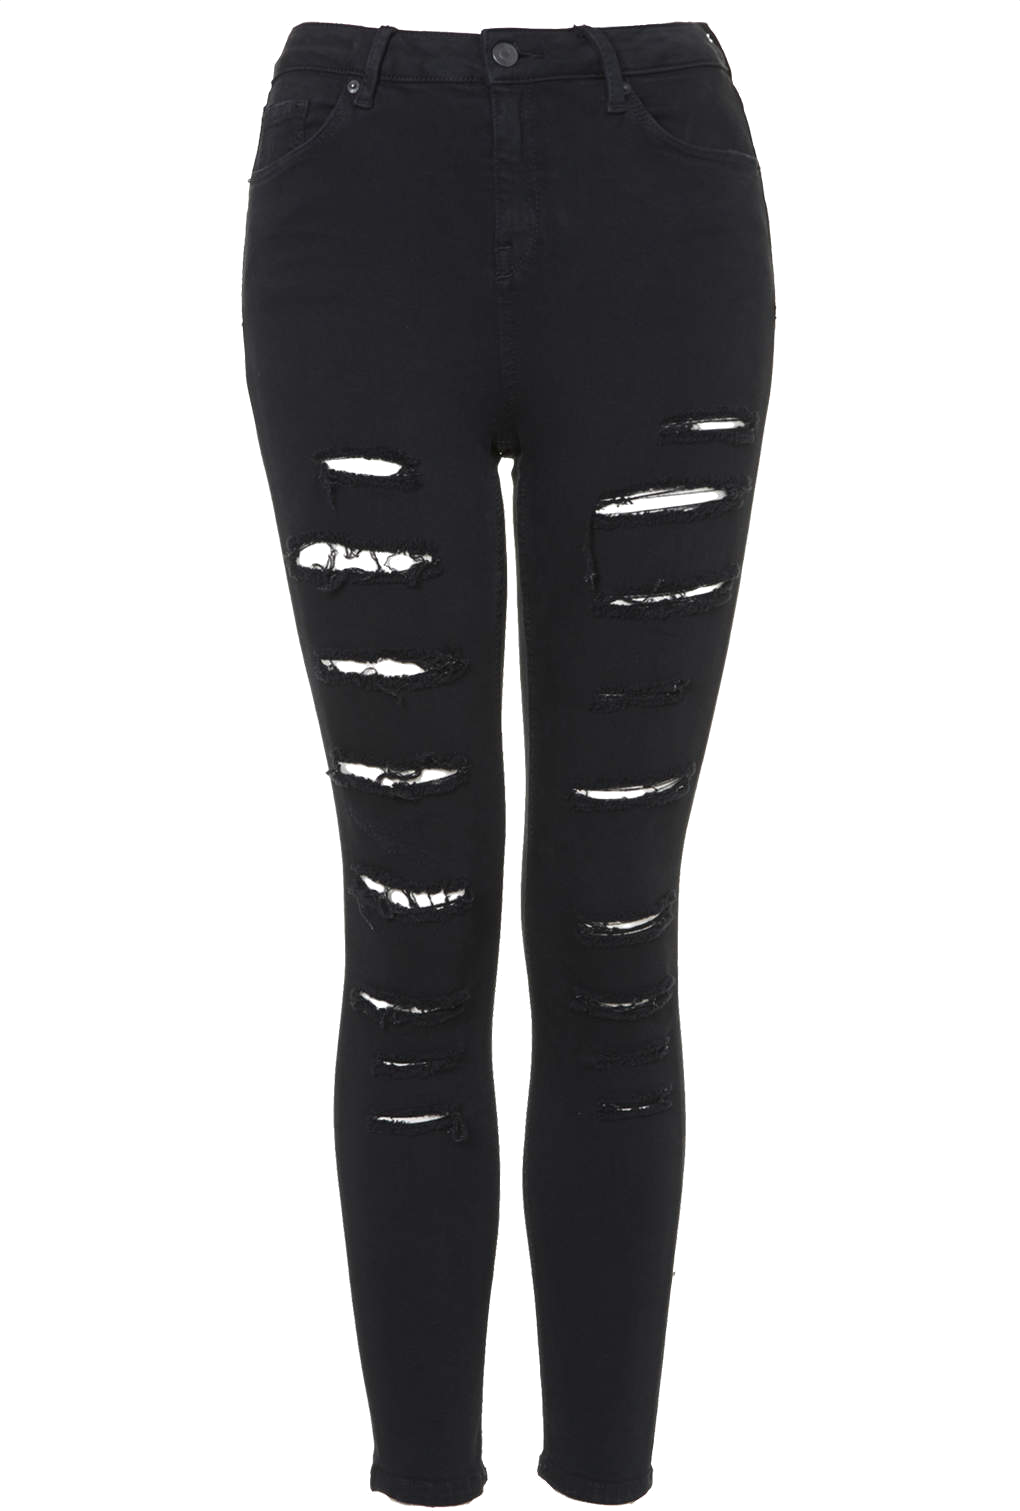 Jeans Topshop Leggings Trousers Download Free Image PNG Image